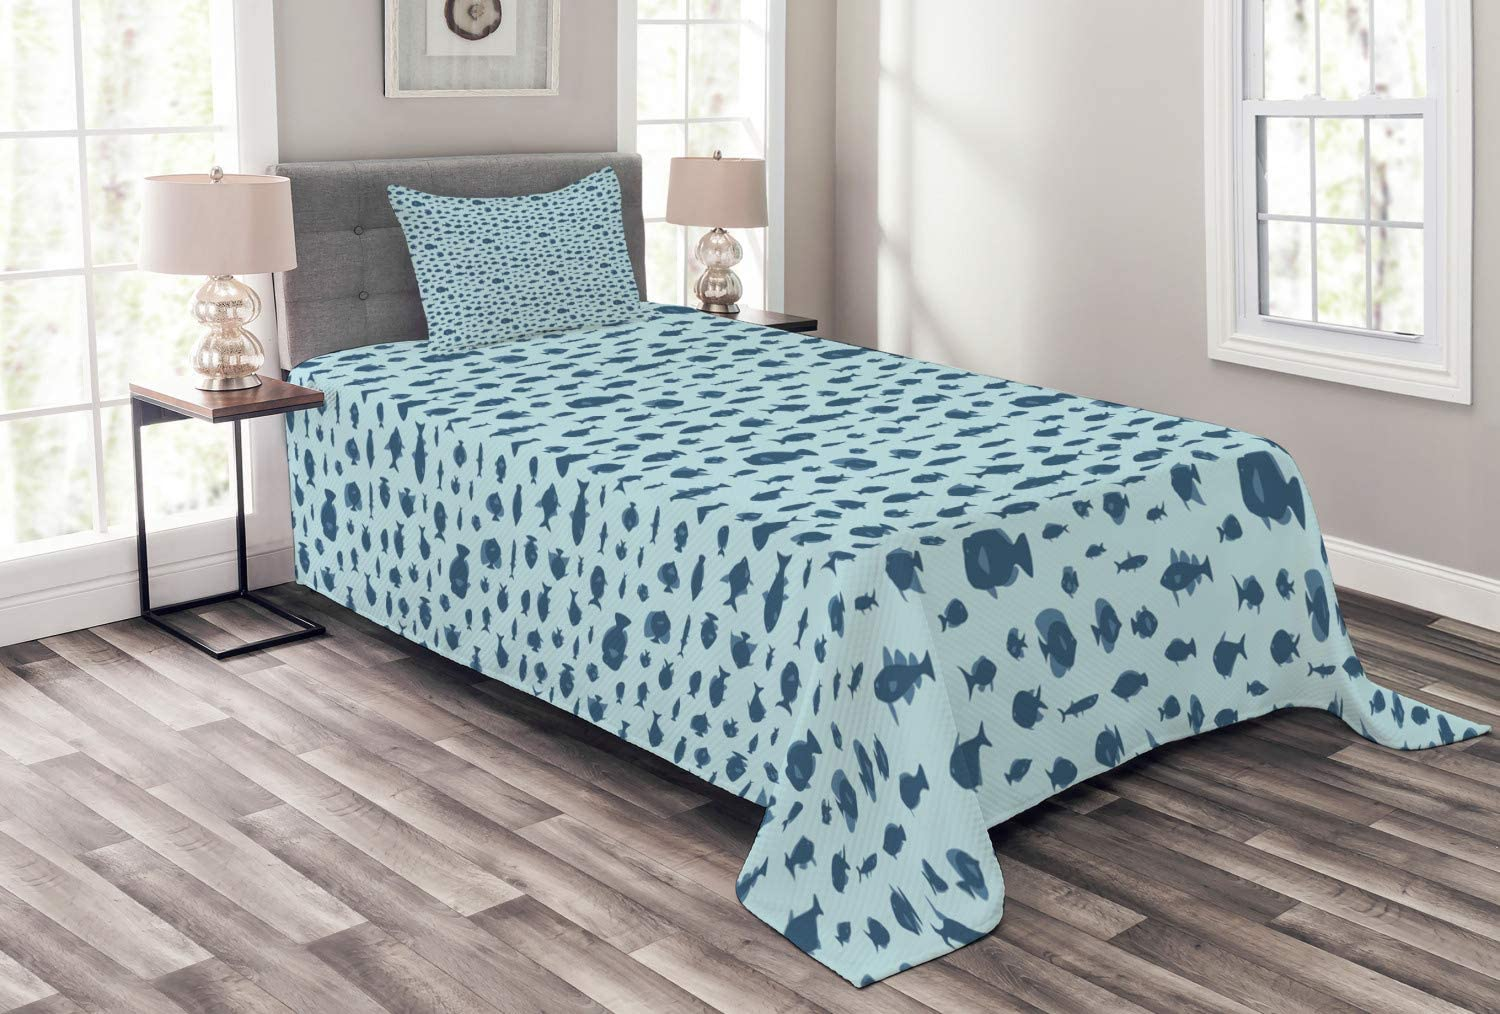 Ambesonne Fish Bedspread Underwater with Artwork Life Inspired Superior Max 72% OFF